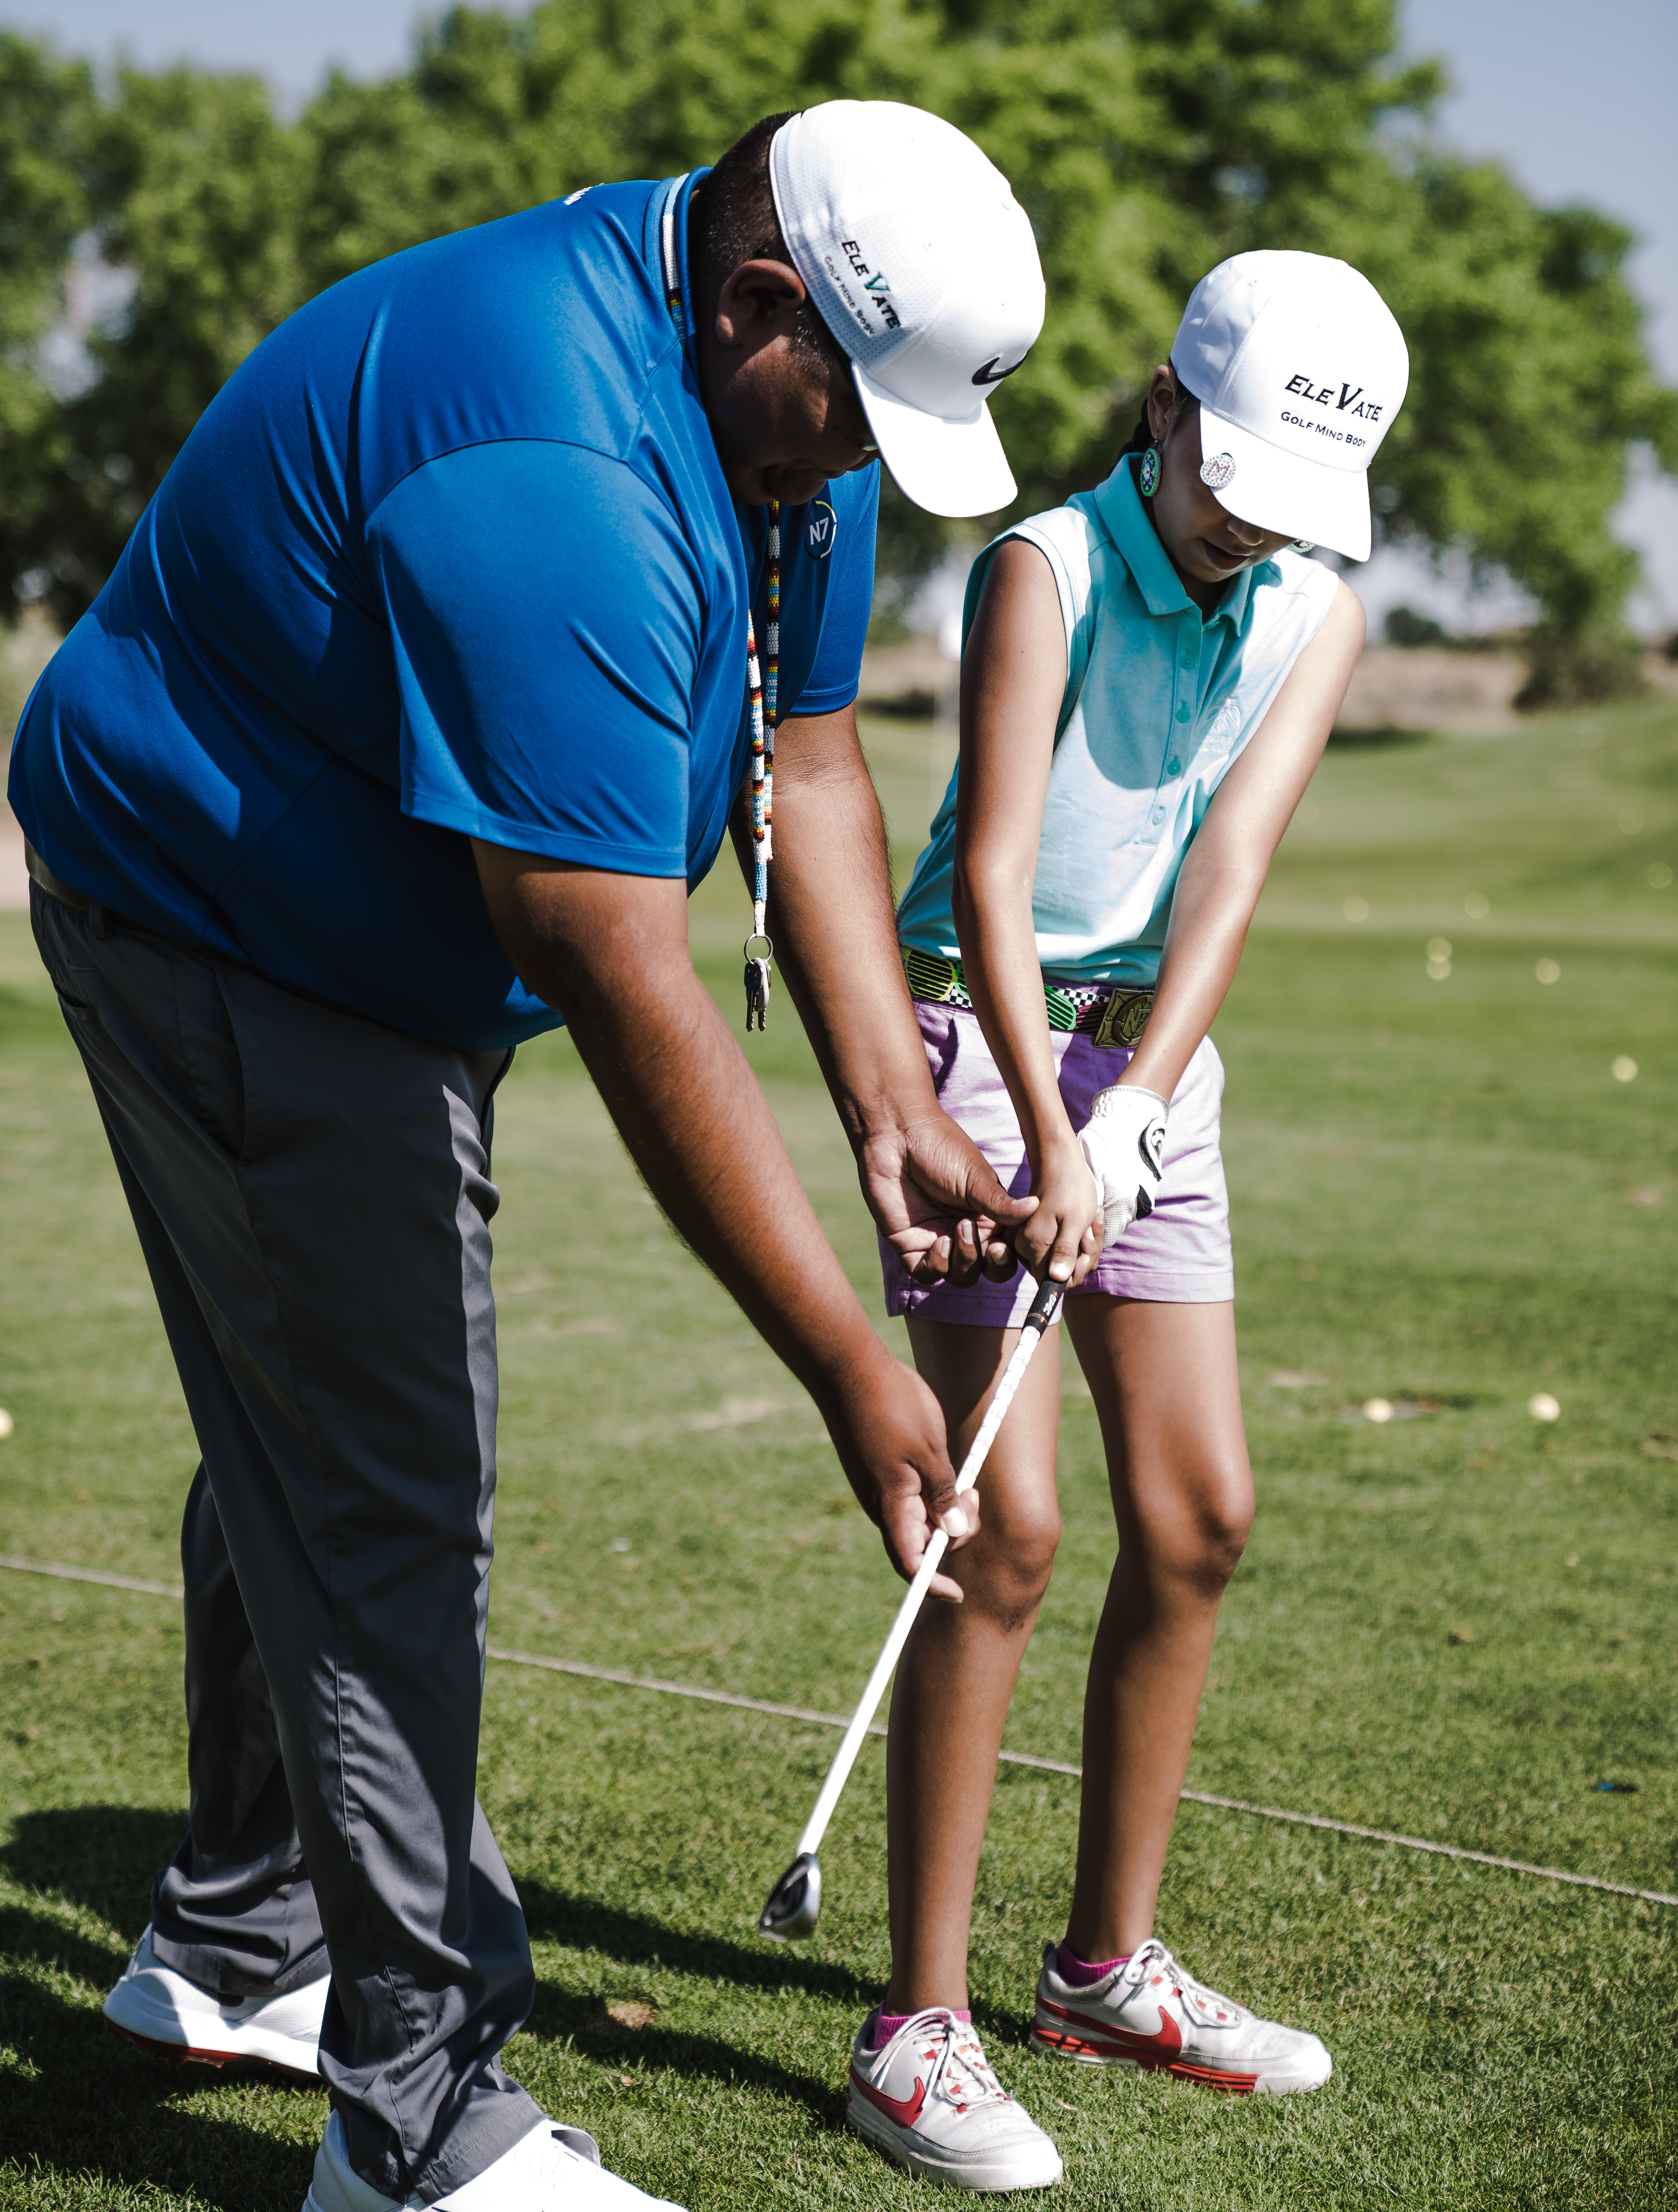 Man Teaching Girl How to Putt